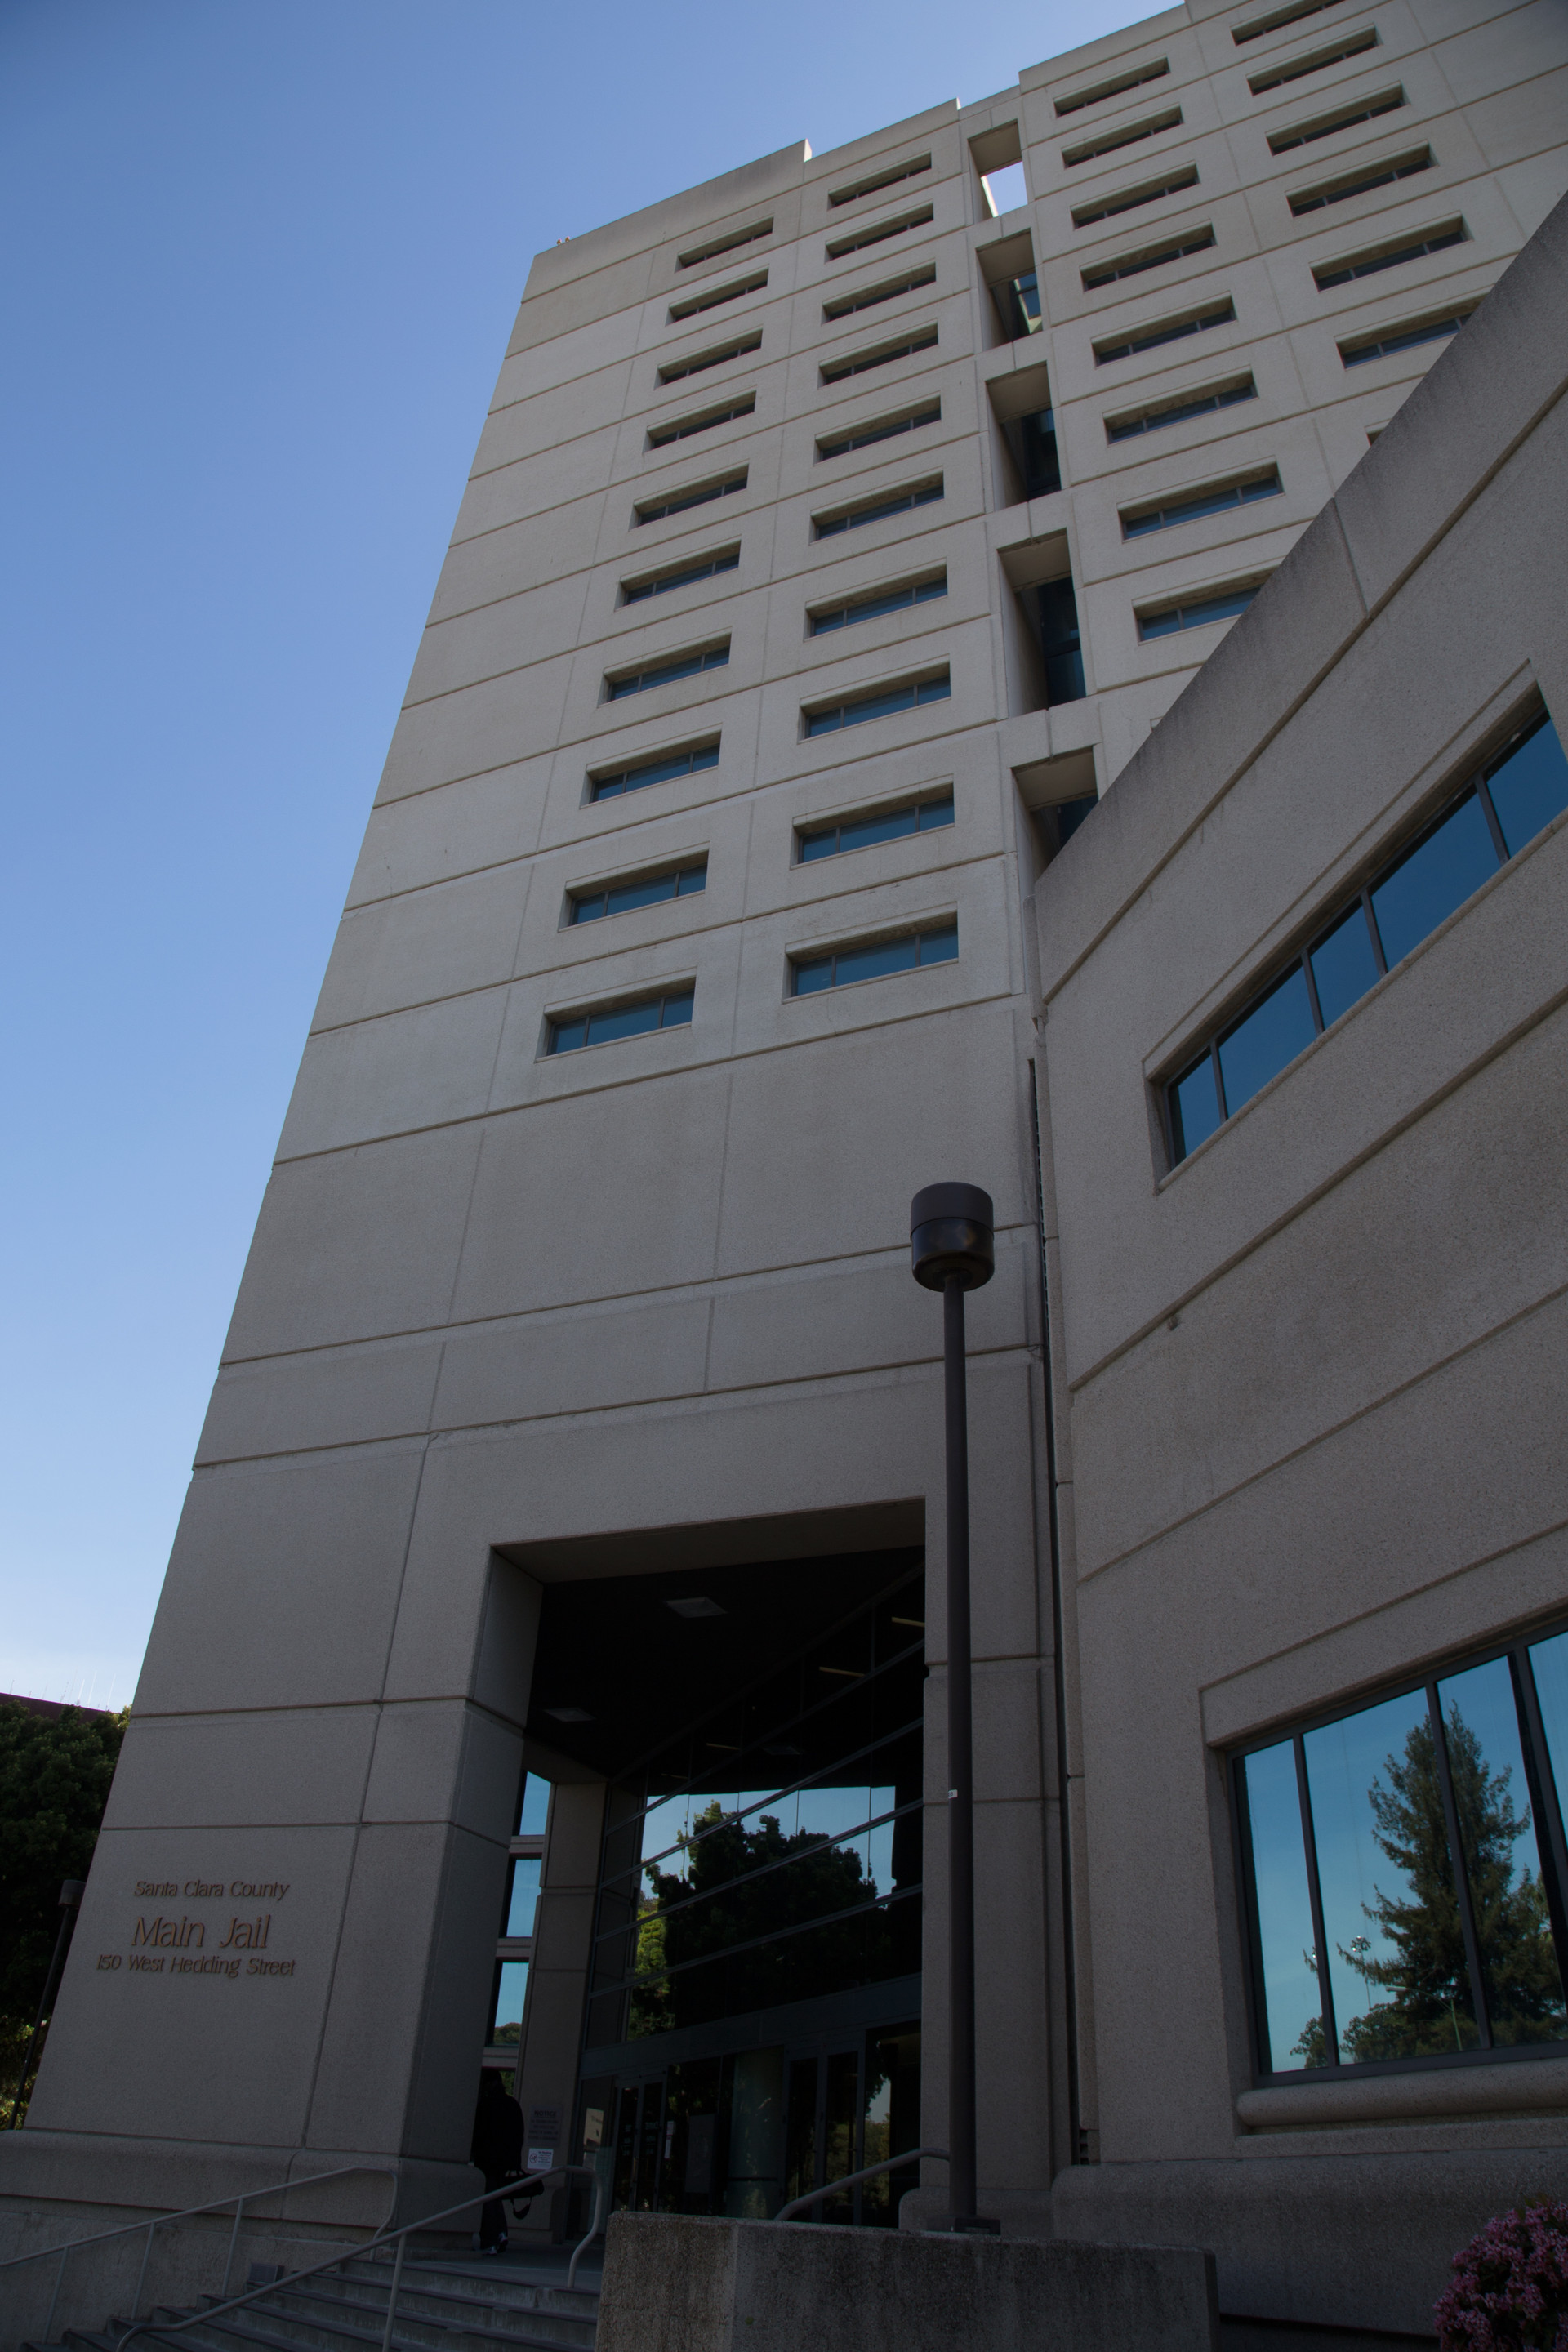 The FBI and two independent commissions are investigating the operations of Santa Clara County's Main Jail.